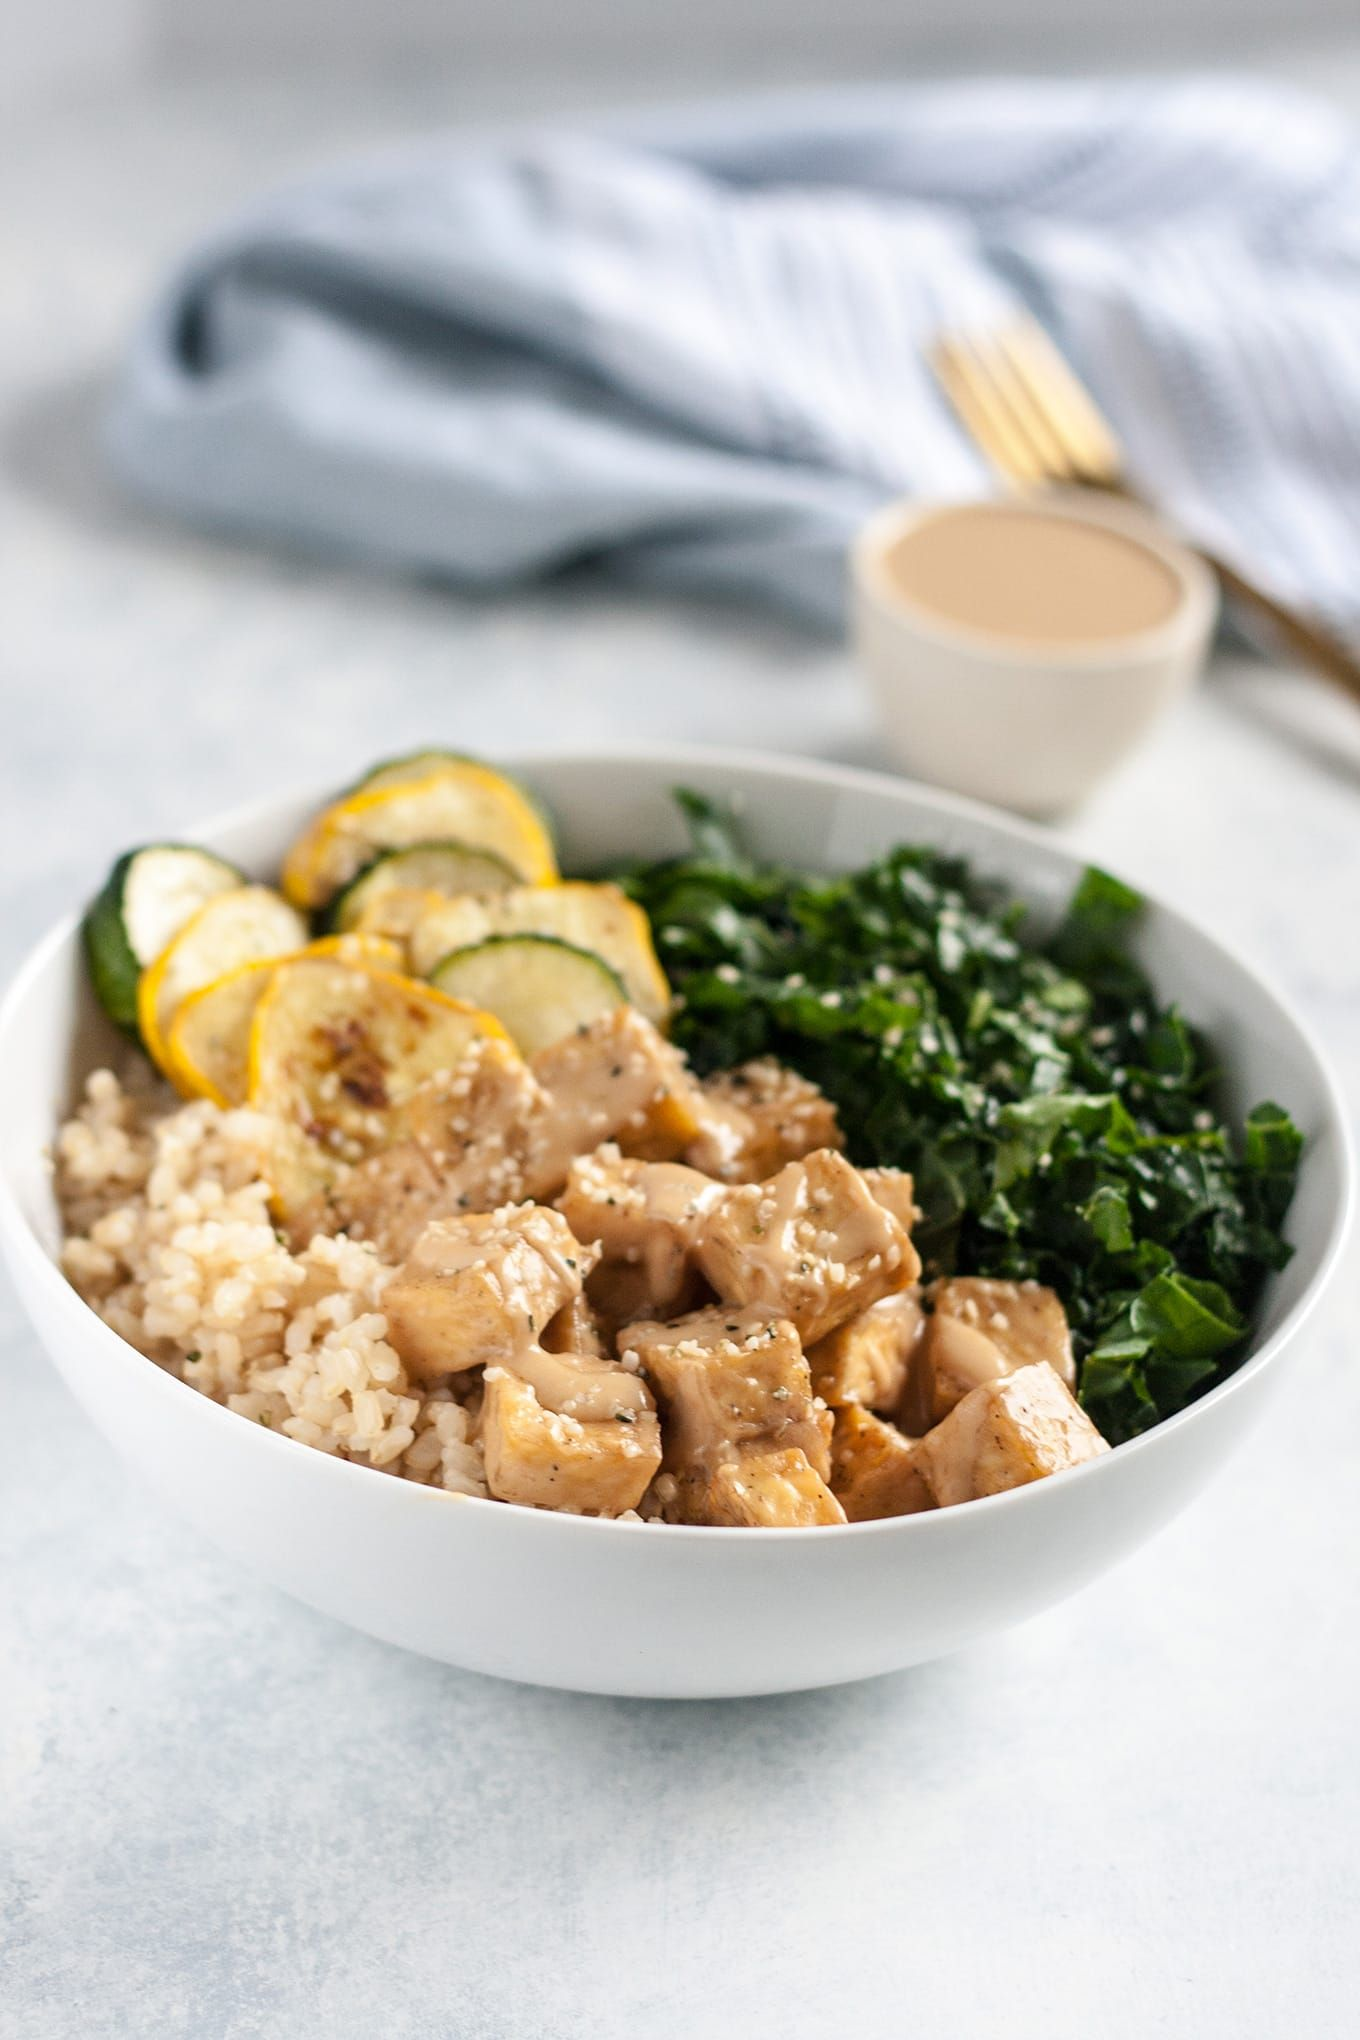 Almond Butter Tofu Bowl With Kale And Summer Squash